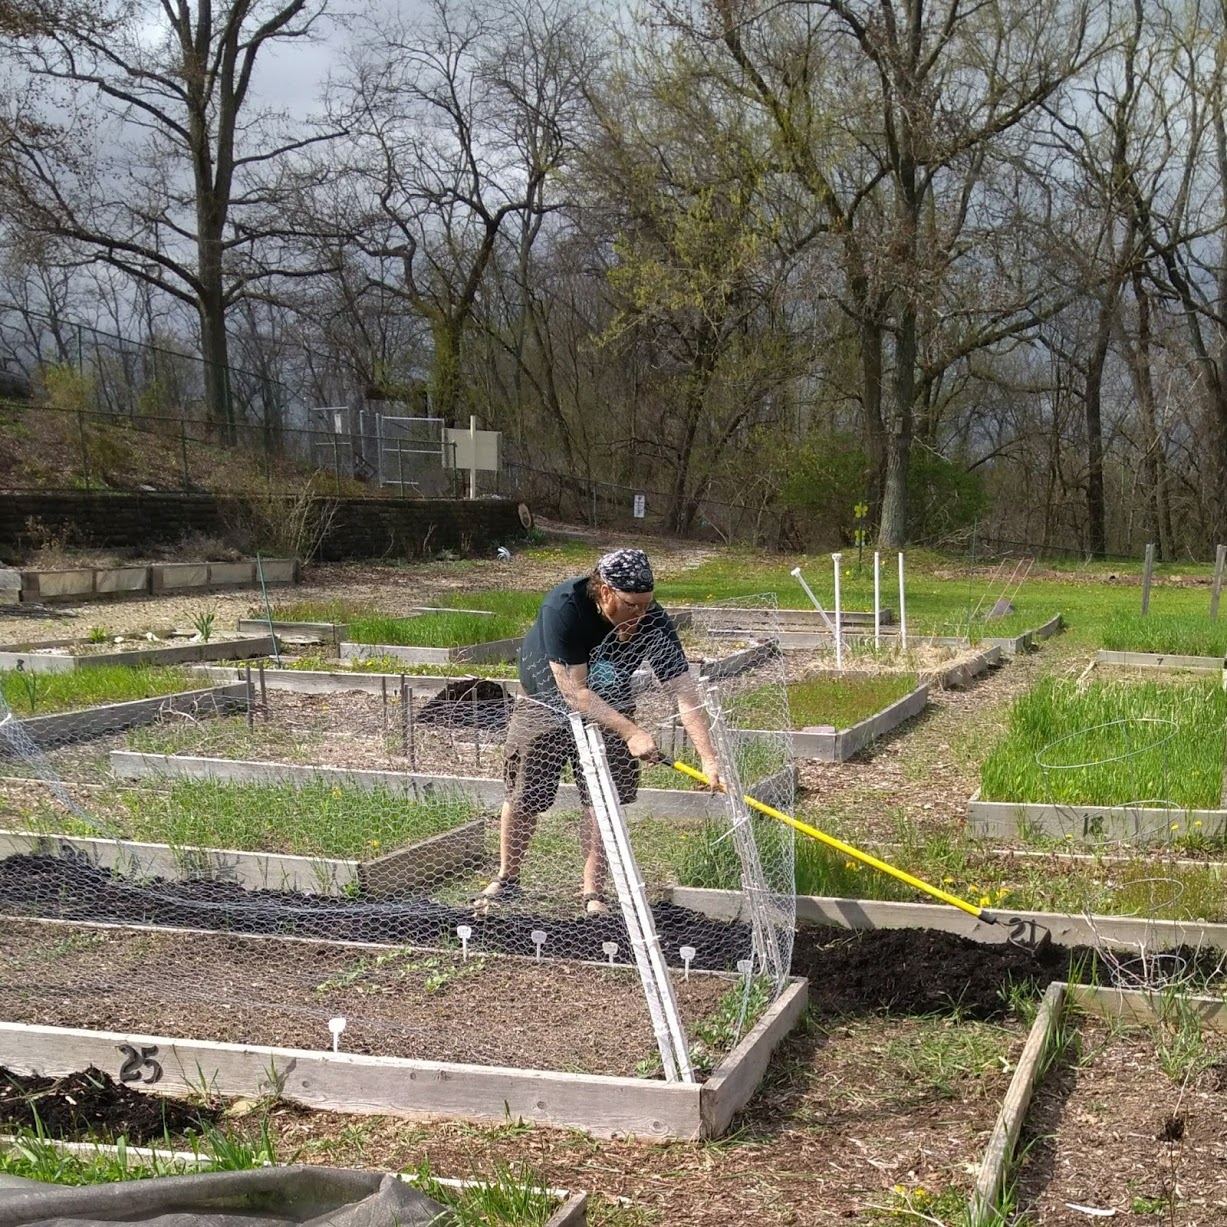 A man digging in a garden with raised beds all around.